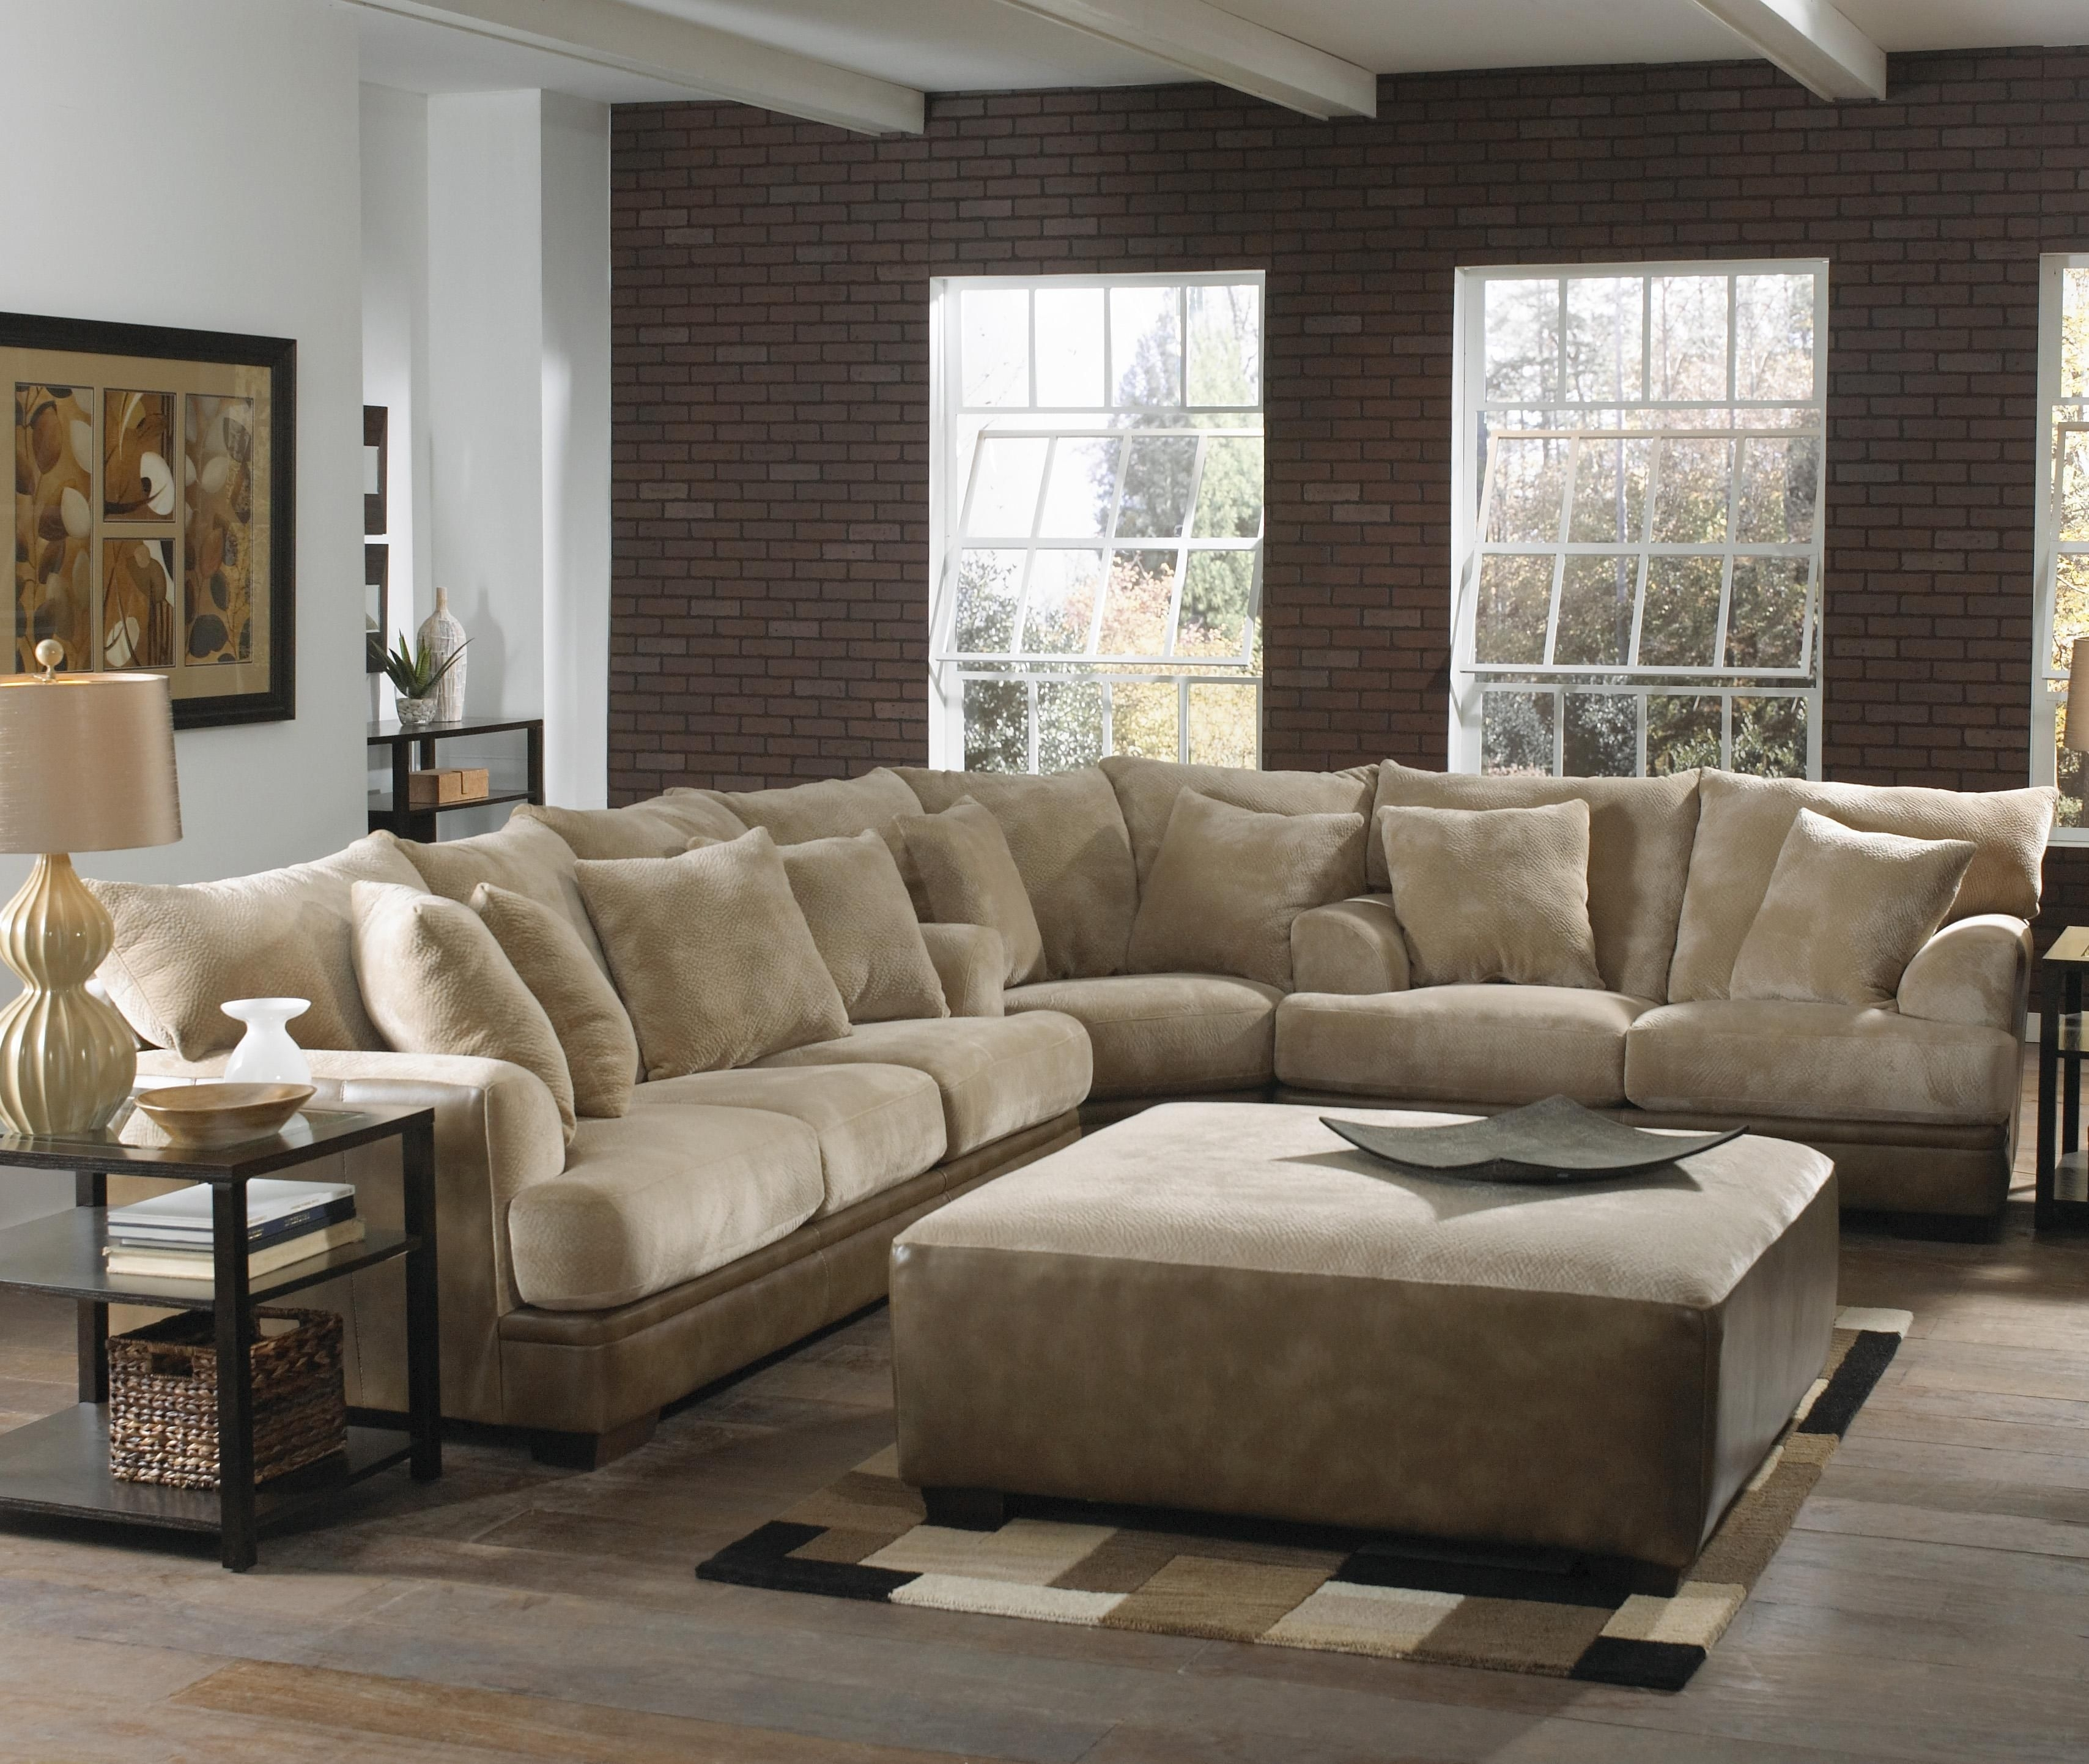 Barkley Large L-Shaped Sectional Sofa With Right Side Loveseat pertaining to Jackson Tn Sectional Sofas (Image 3 of 10)